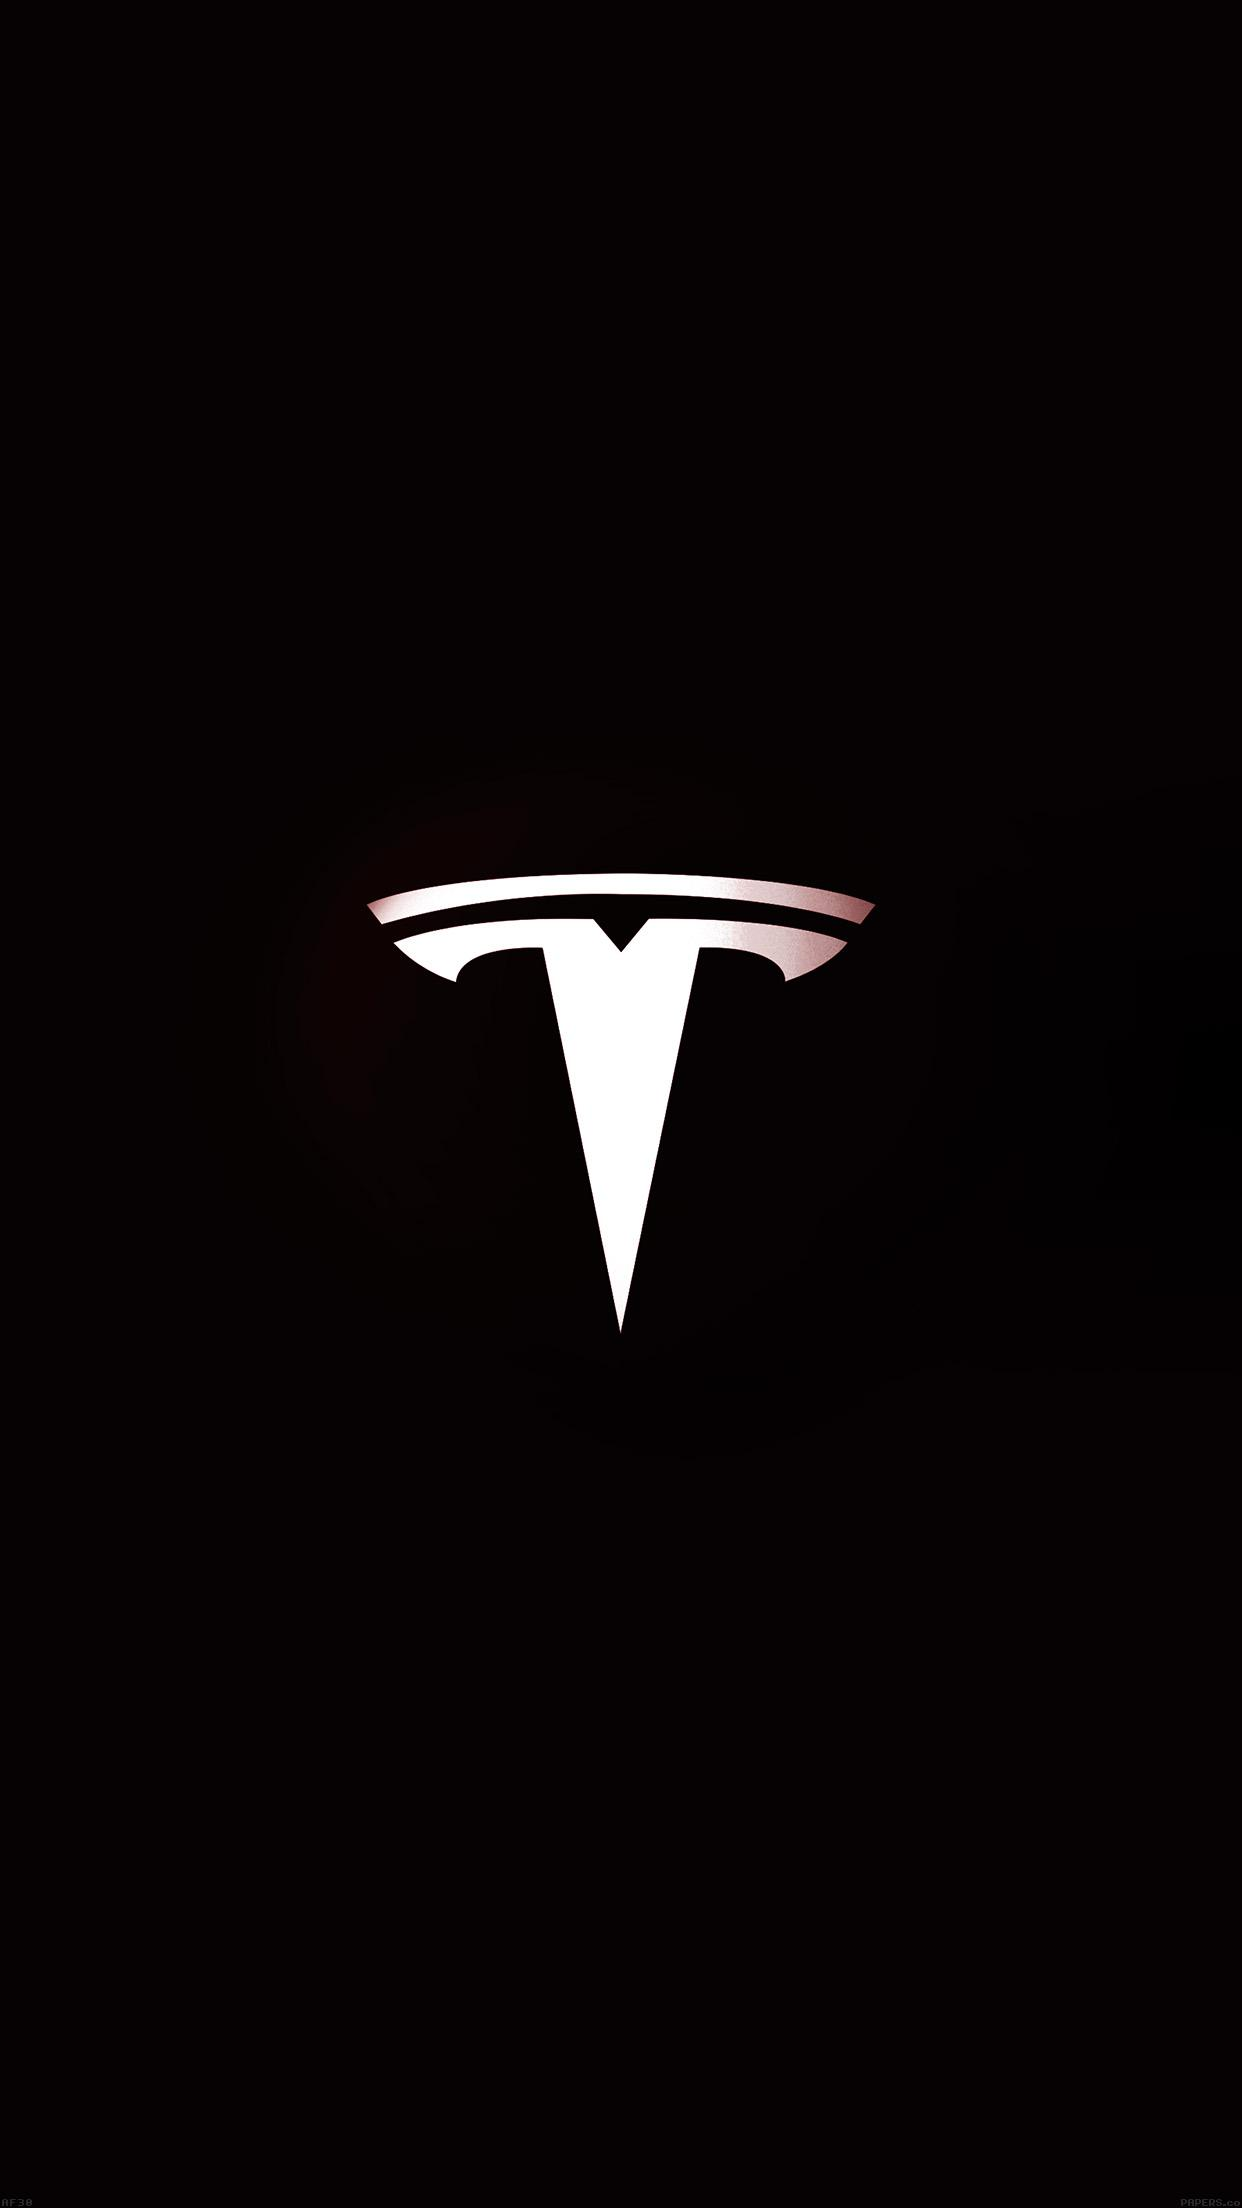 iPhone wallpaper Tesla Motors Logo Dark 3Wallpapers : notre sélection de fonds d'écran du 13/02/2018